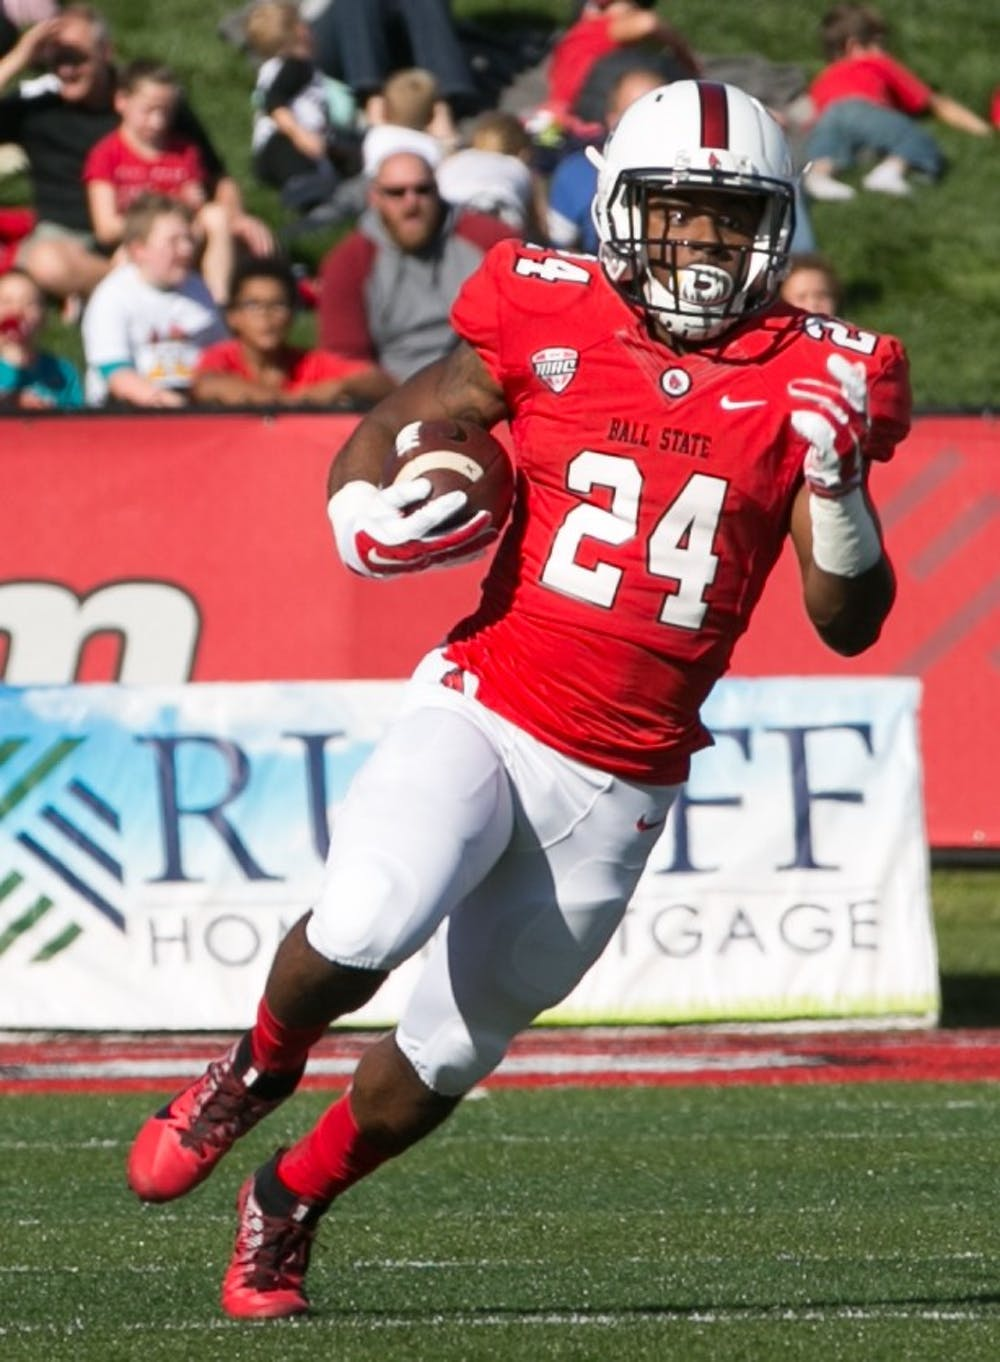 <p>Sophomore running back Markice Hurt Jr. runs the ball during the first quarter of the Homecoming game against Central Michigan Oct. 21, 2017, in Scheumann Stadium. The Cardinals lost 56-9. Kaiti Sullivan, DN</p>